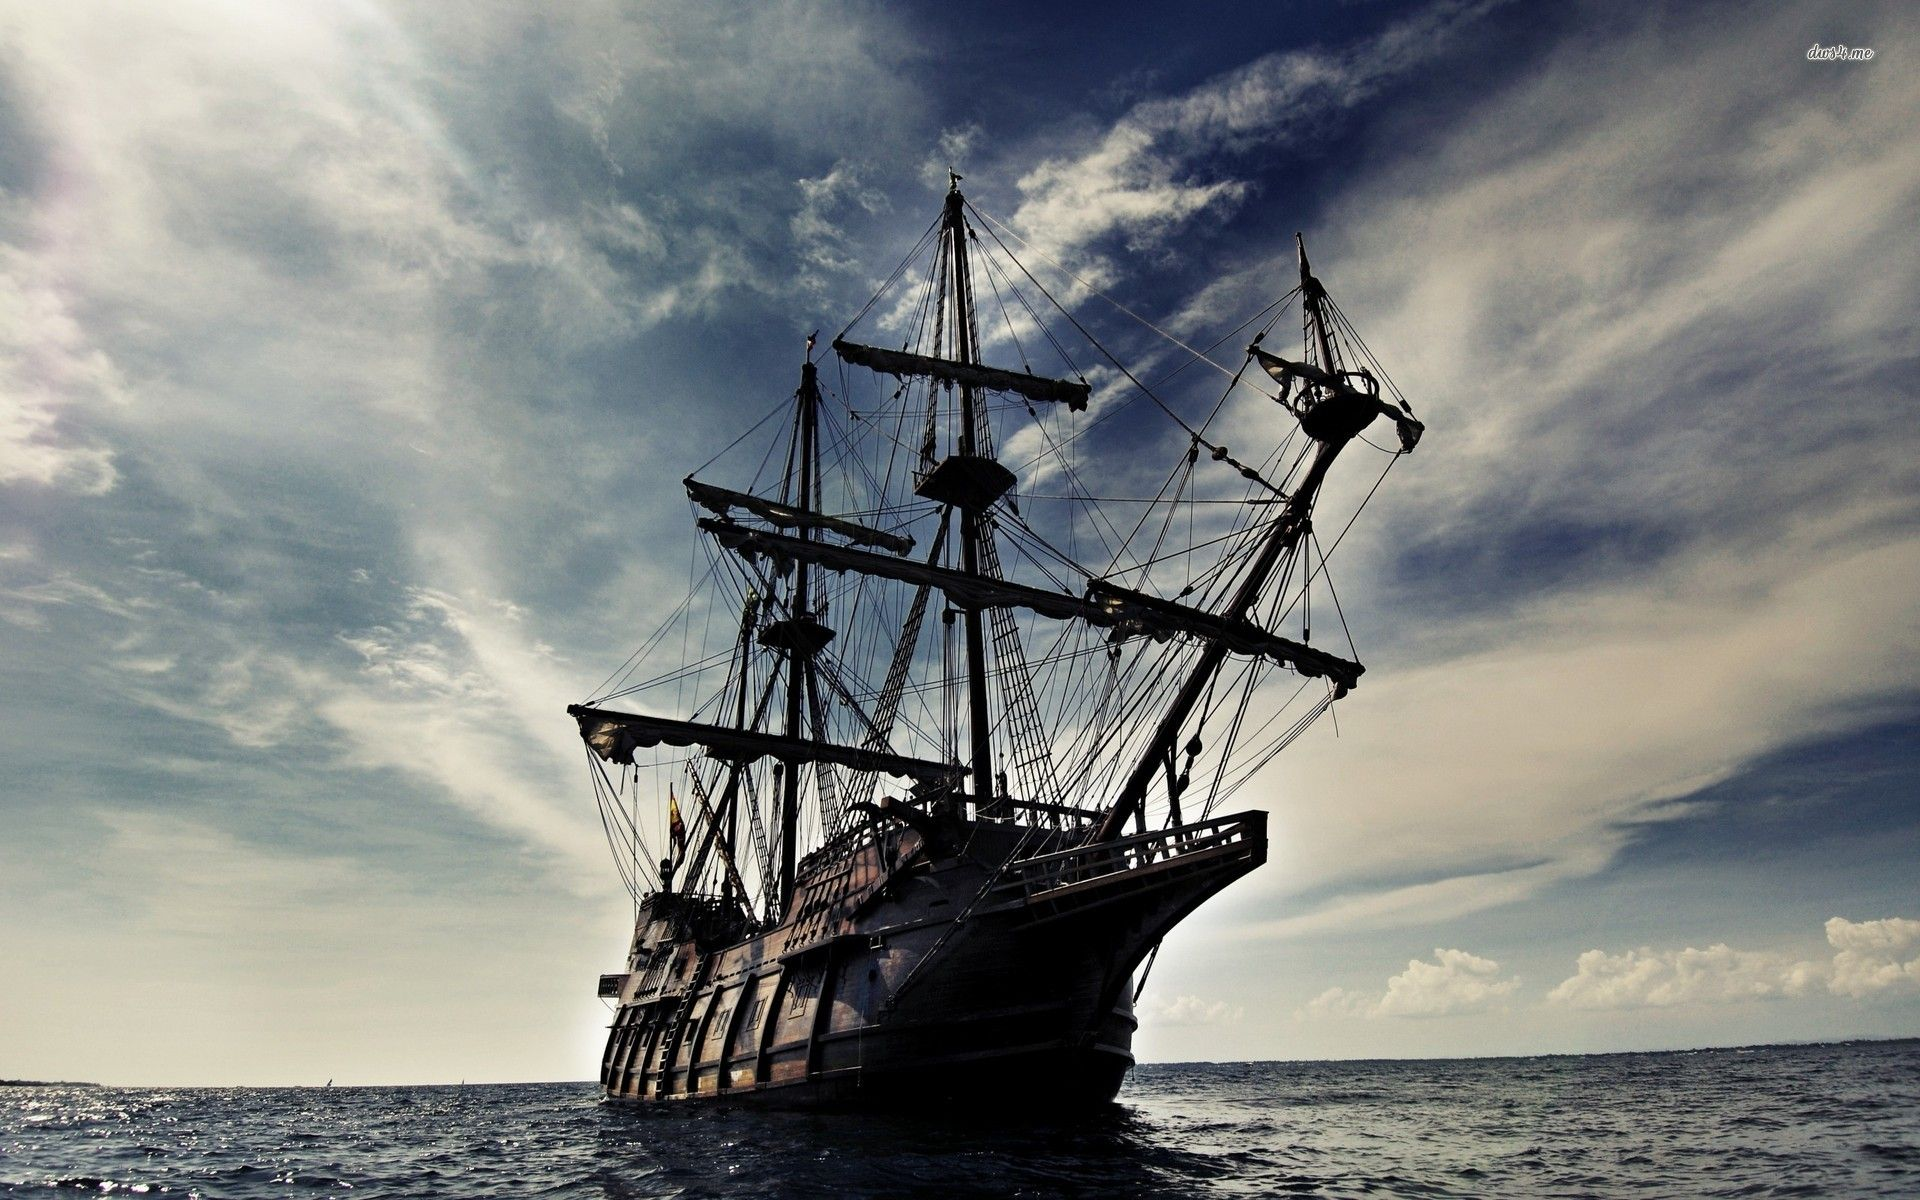 Pirates Of The Caribbean Images The Black Pearl Hd Wallpaper